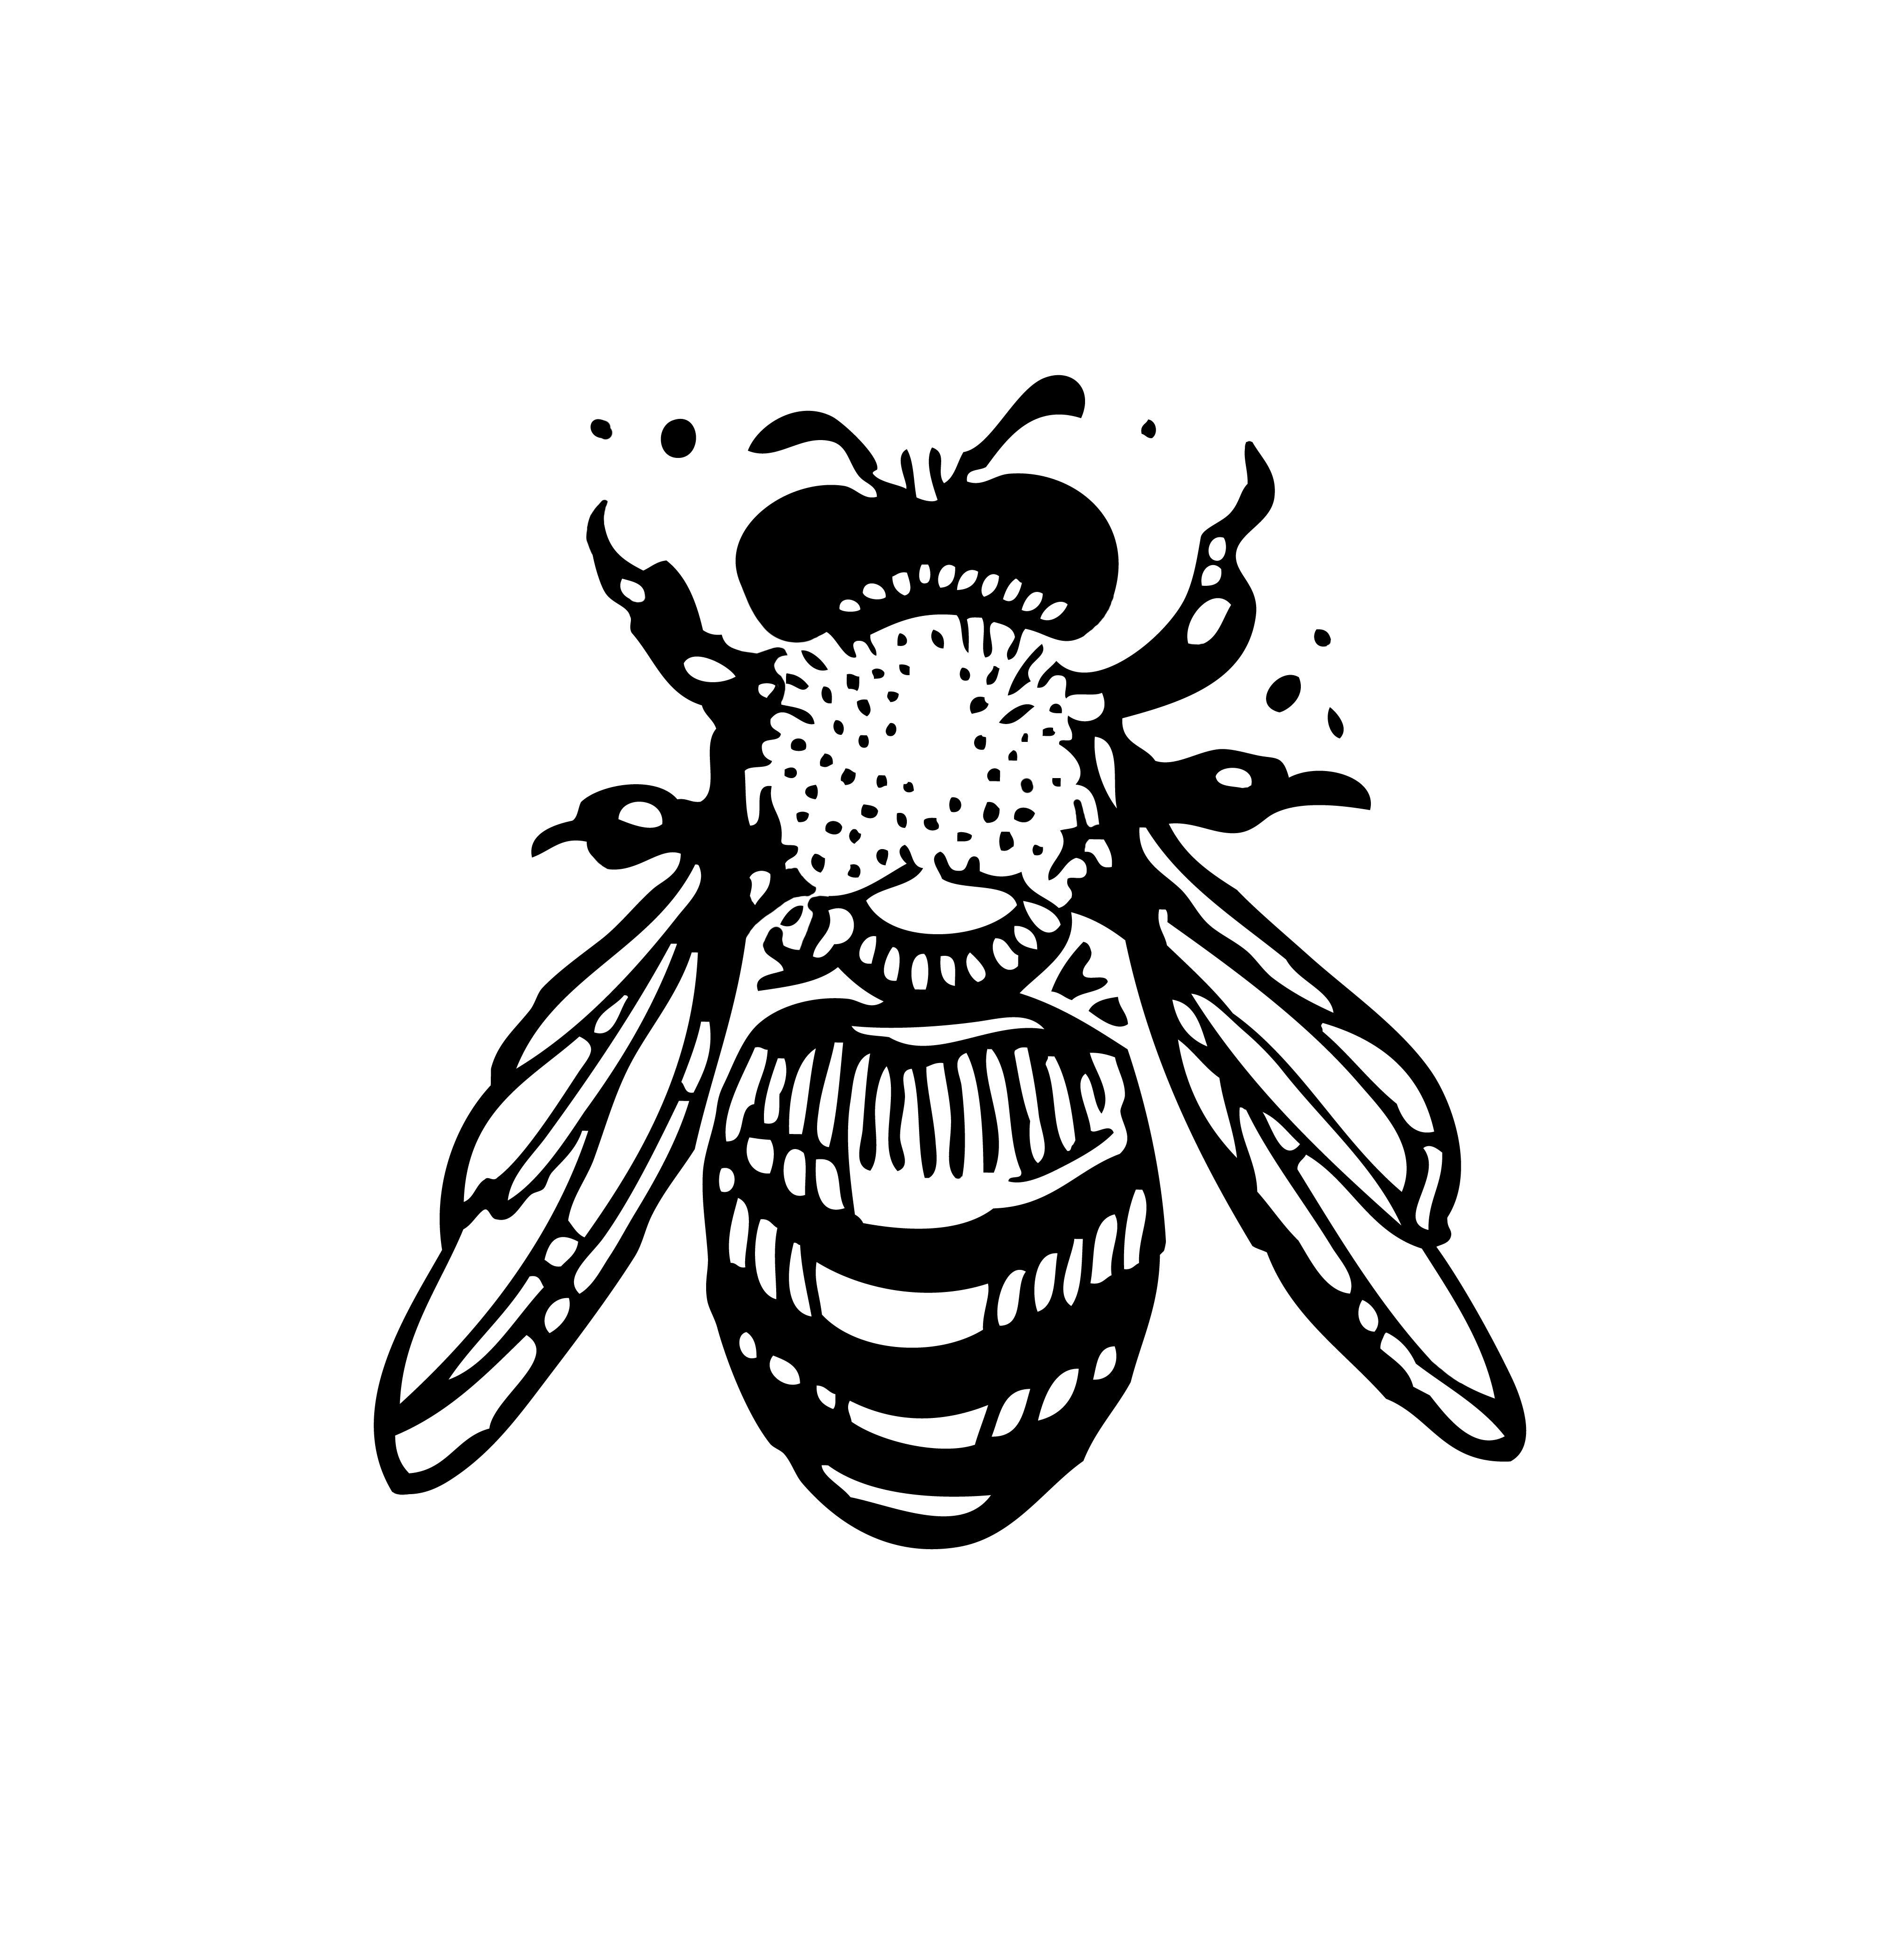 Bumble Bee Honey Bee Vector Stencil Art In Black White Bee Stencil Bee Painting Bee Illustration